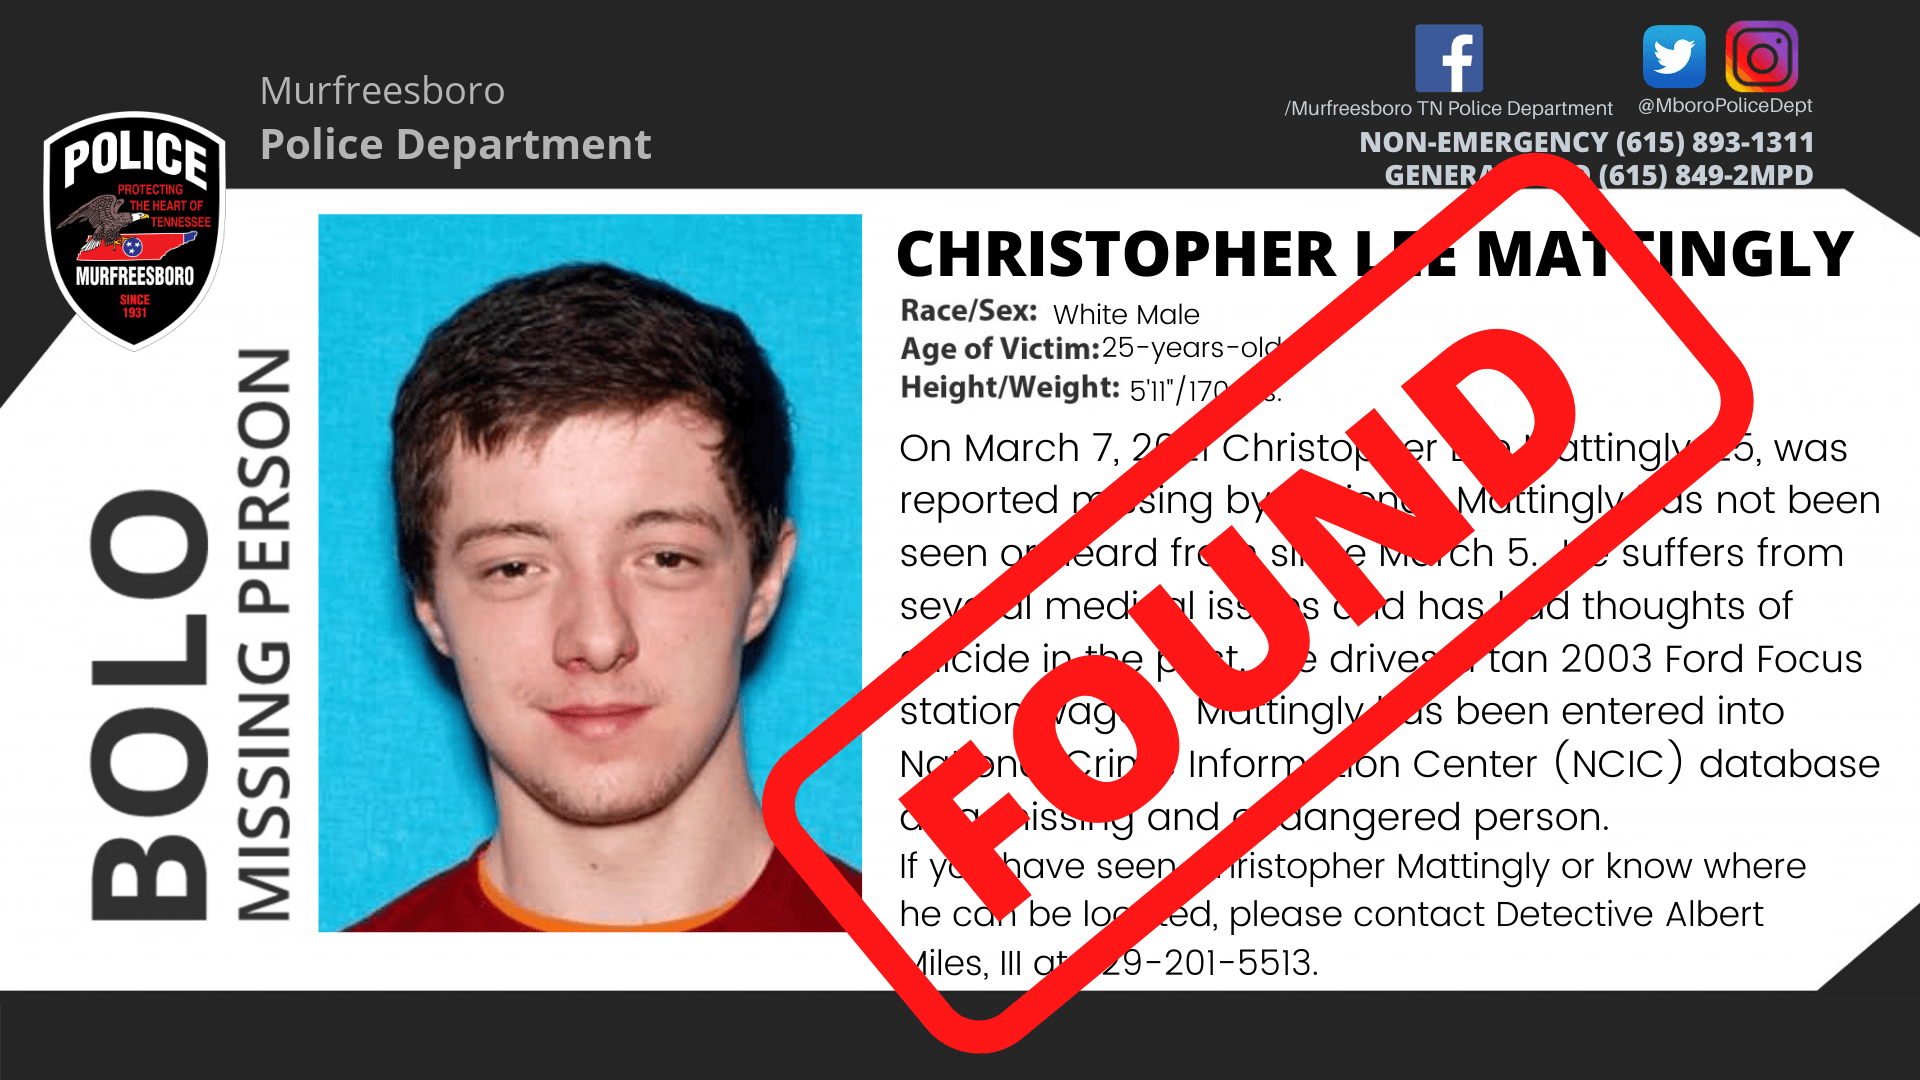 MISSING CHRISTOPHER MATTINGLY FOUND